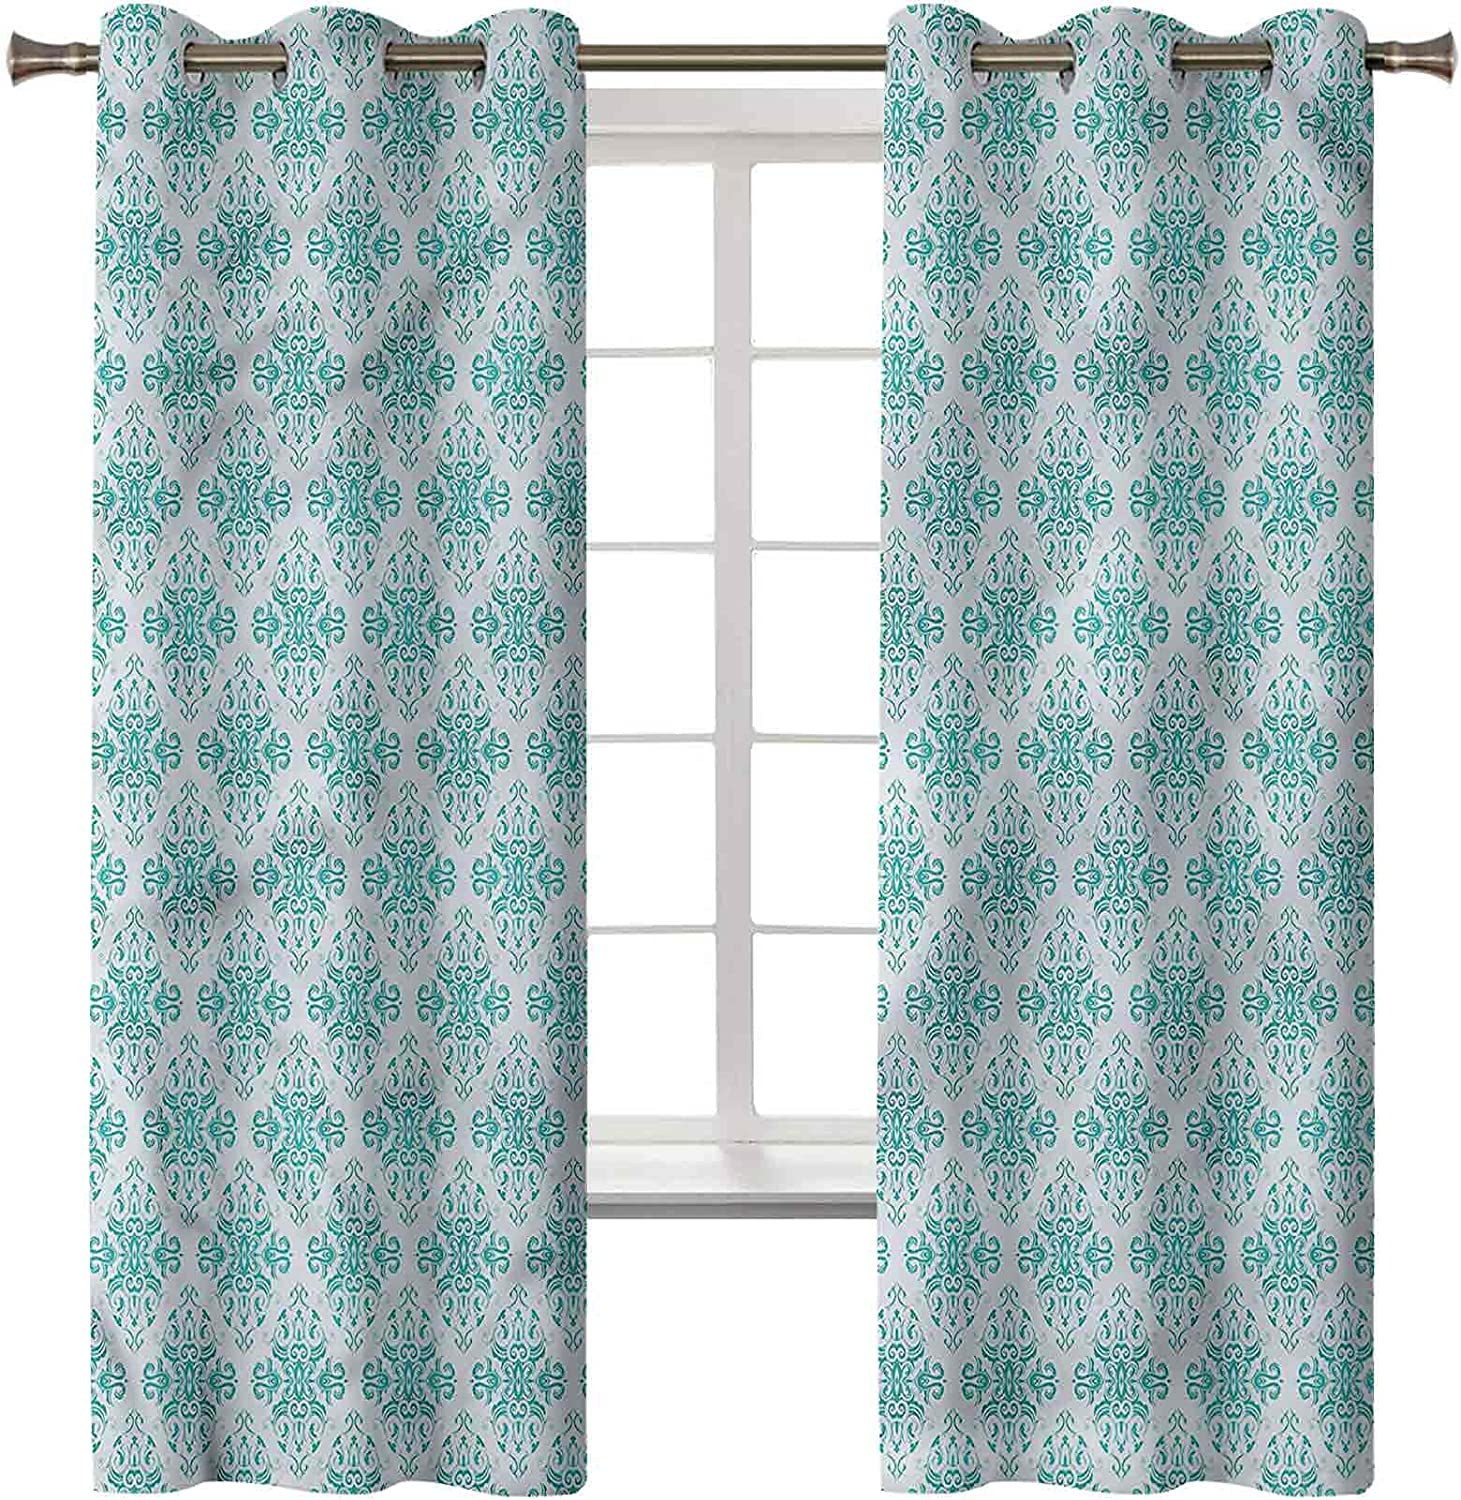 Damask Thermal Insulated Curtains Set of Panels Inch Popular product Selling and selling 42 x 2 84